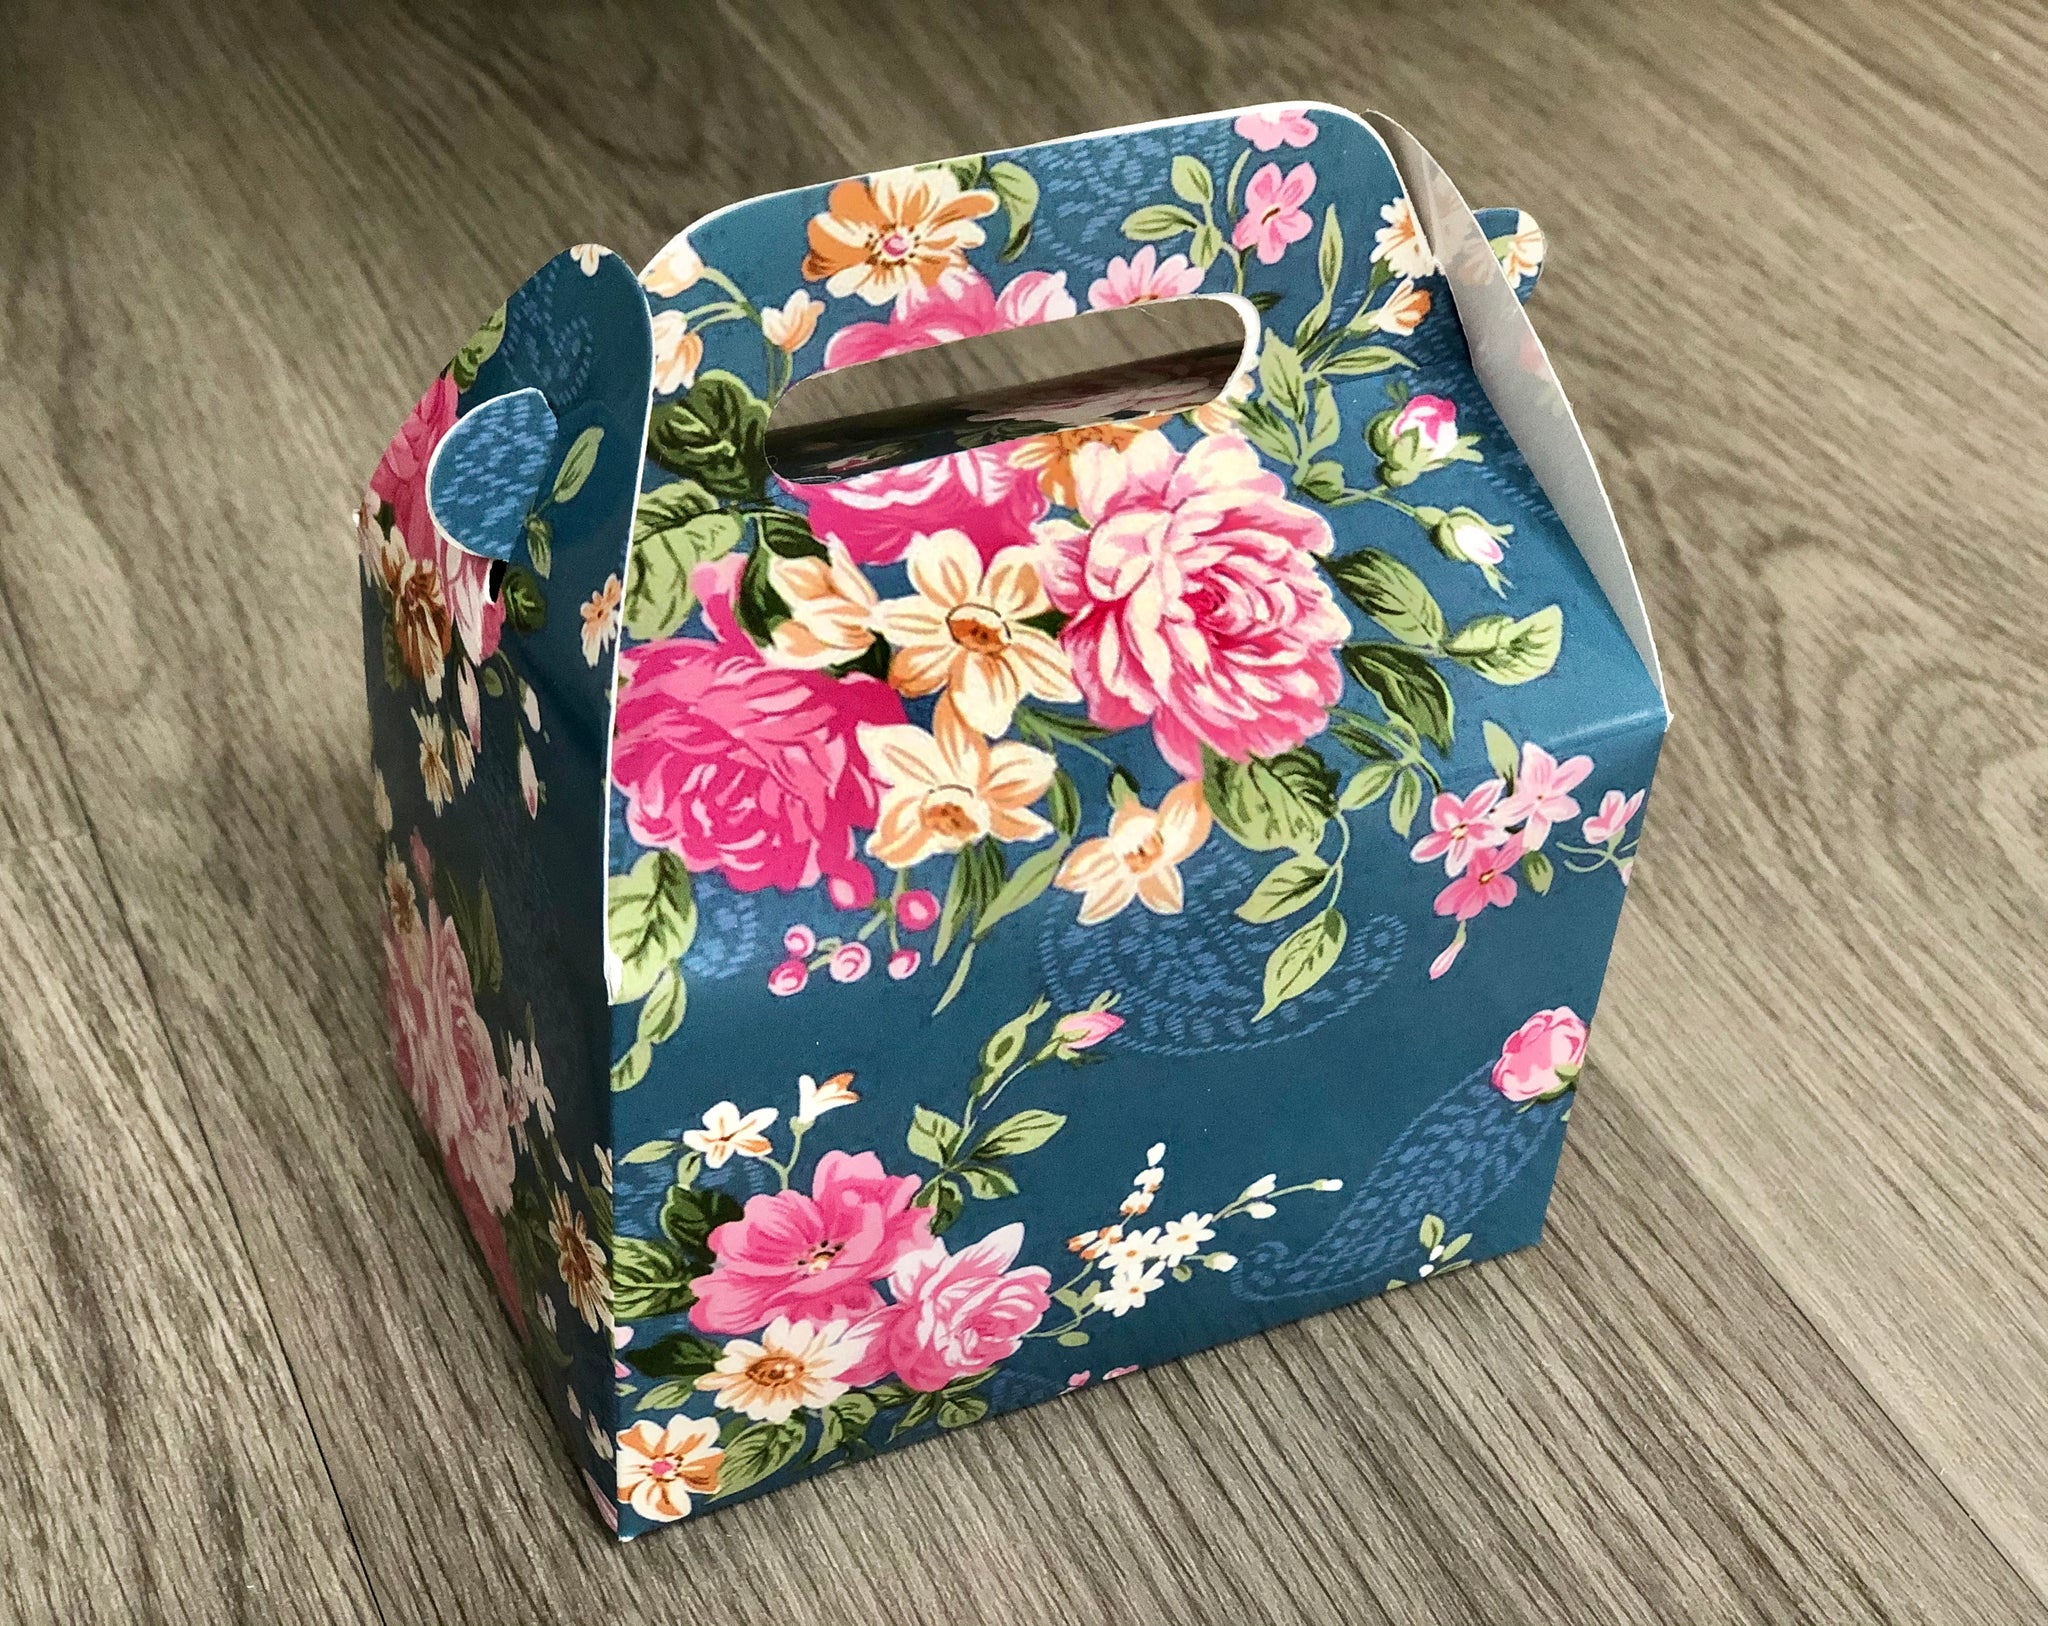 Floral Pattern Favor Boxes / Treat Boxes / Gift Boxes